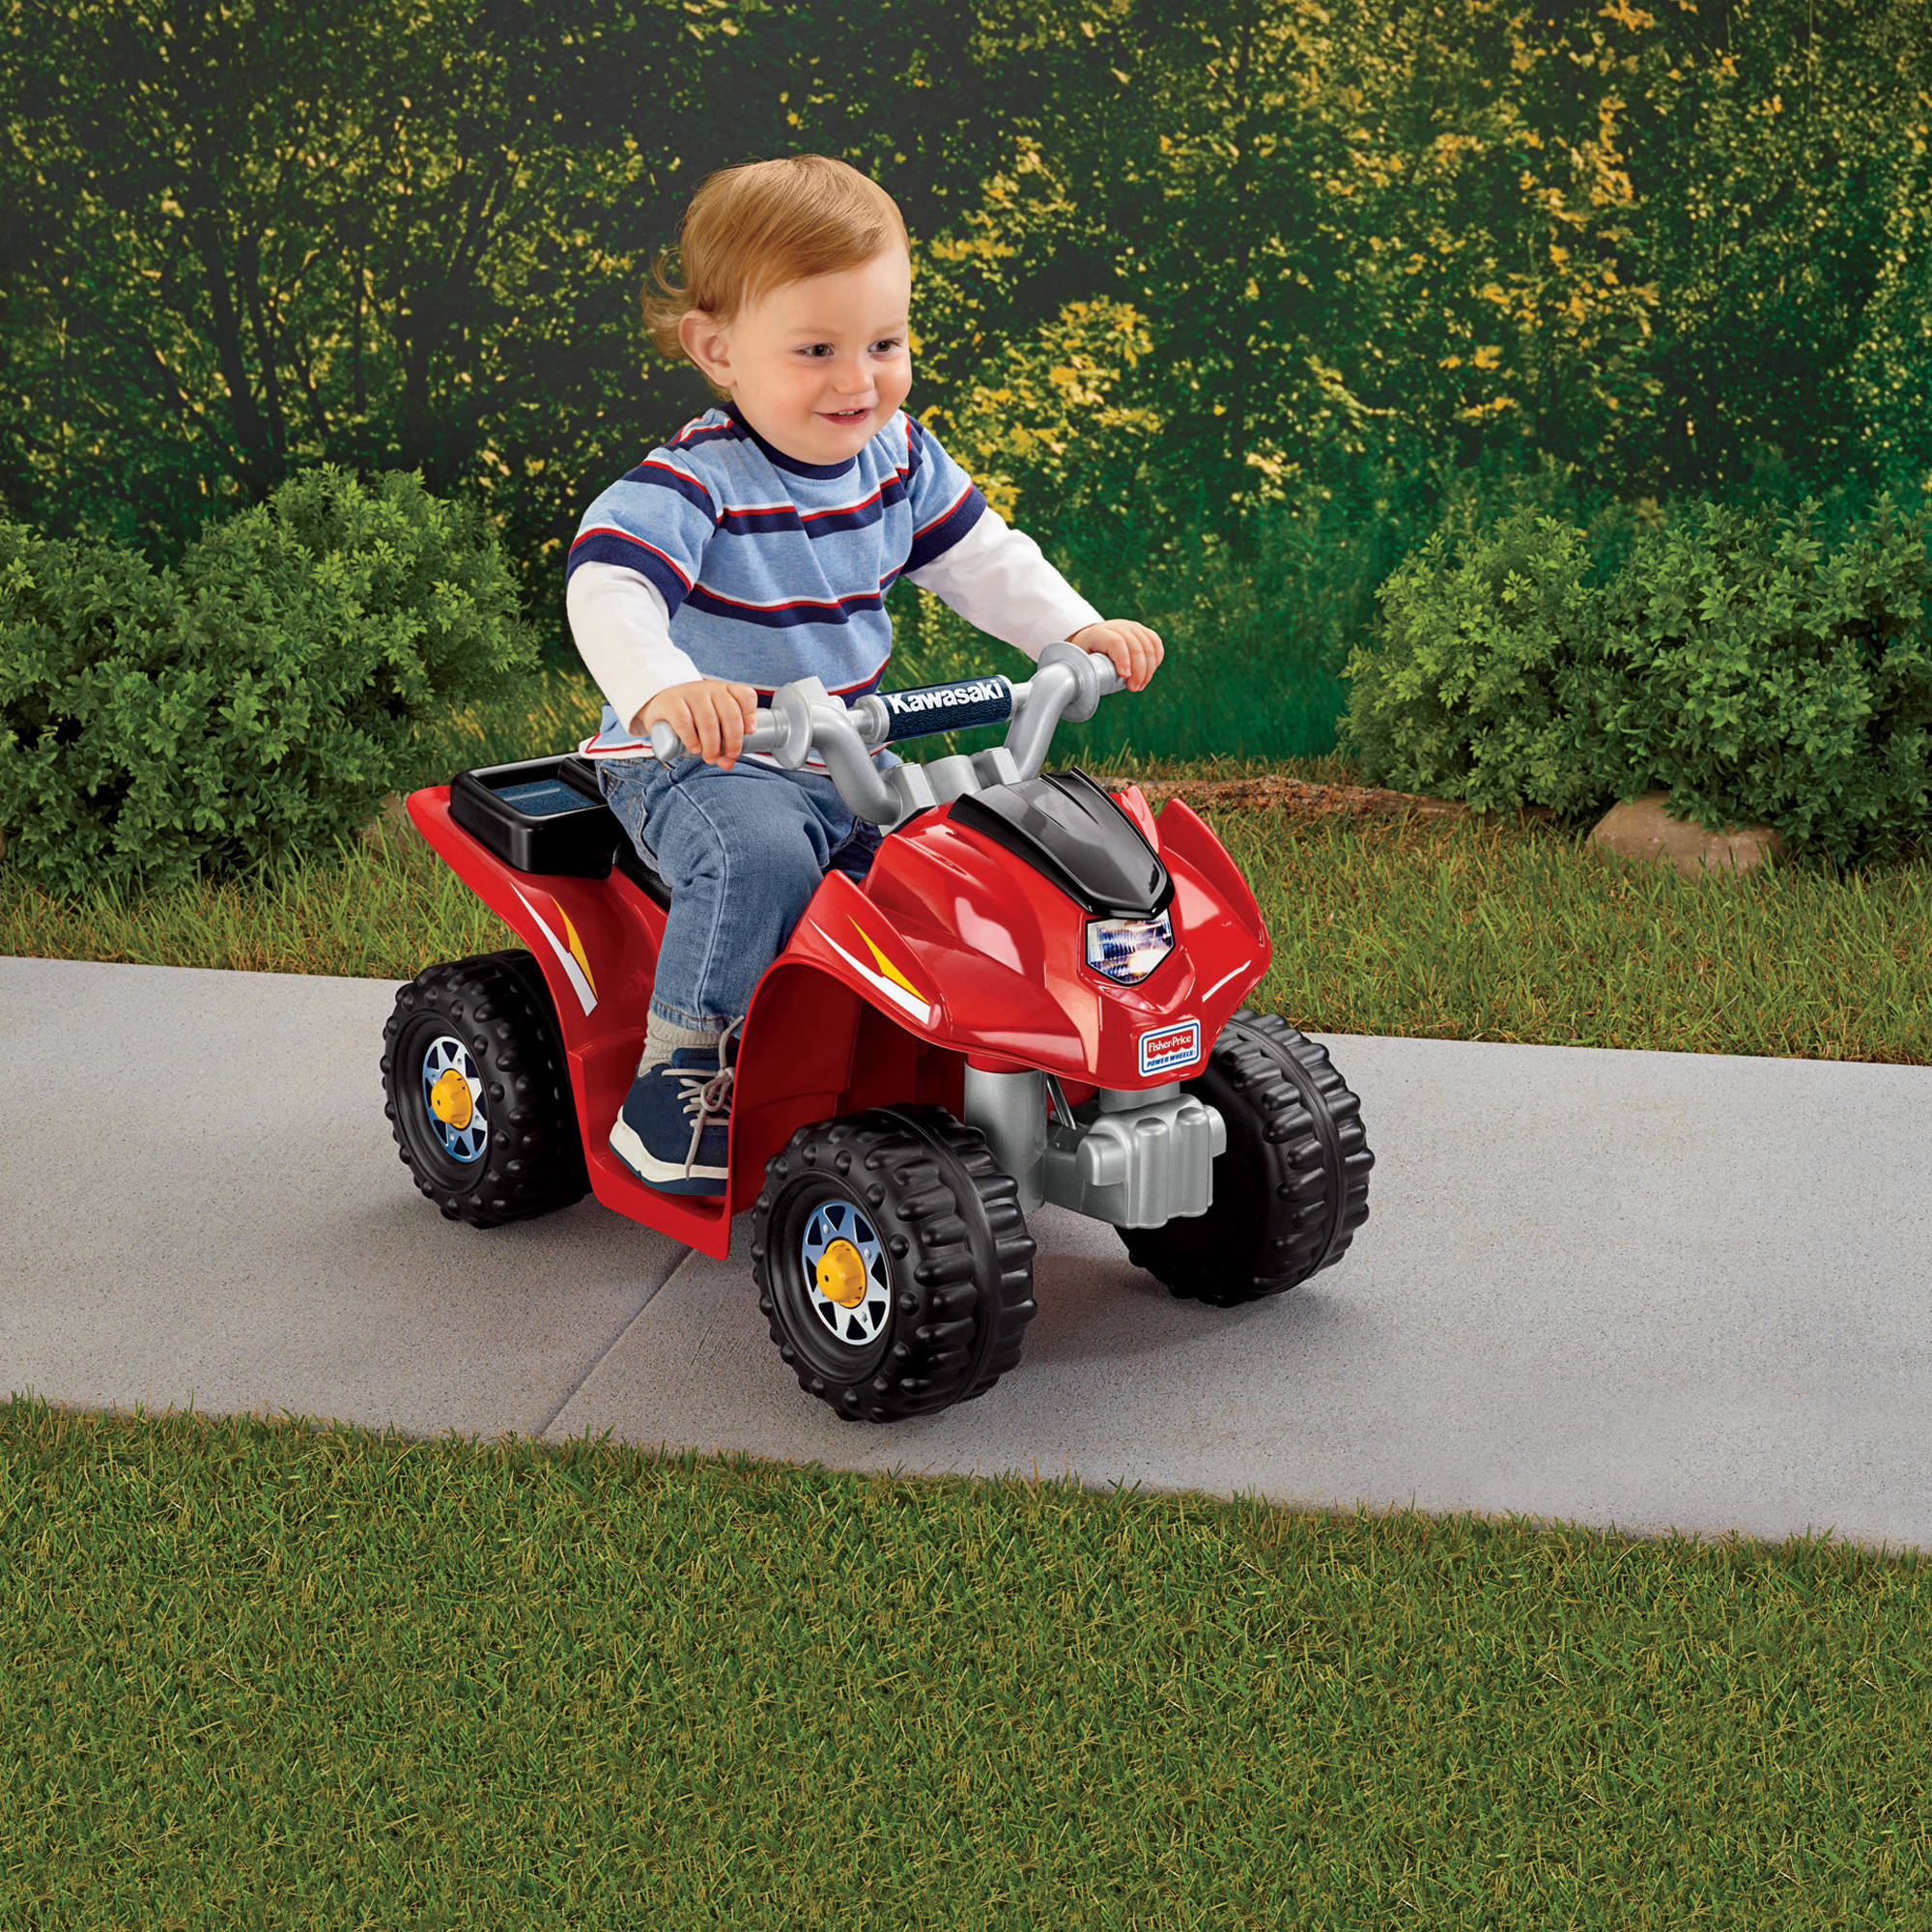 Ride on Toy 3 Wheel Motorcycle for Kids Battery Powered Ride